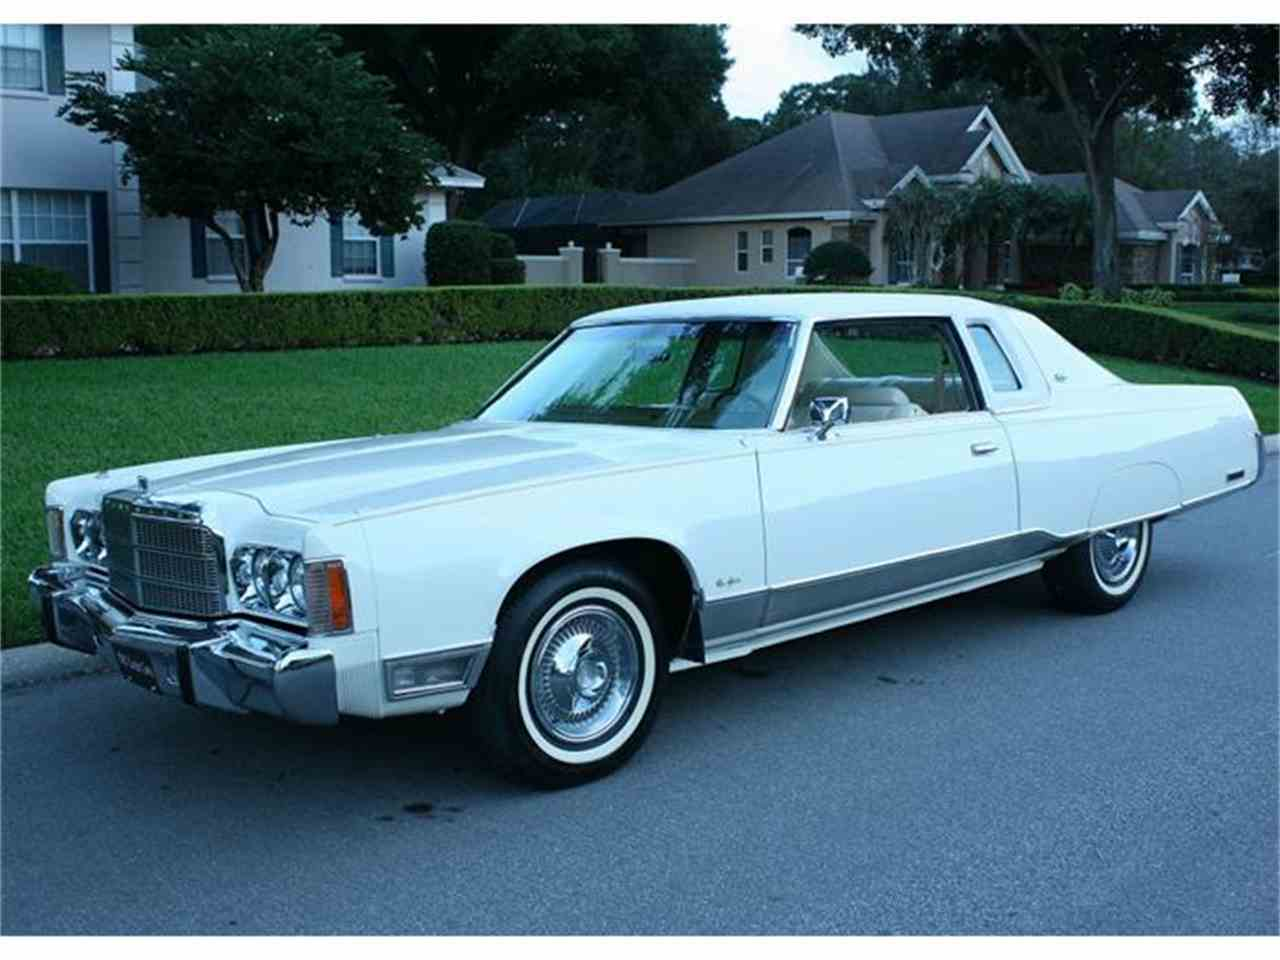 Cars For Sale In Iowa >> 1975 Chrysler New Yorker for Sale | ClassicCars.com | CC-761662